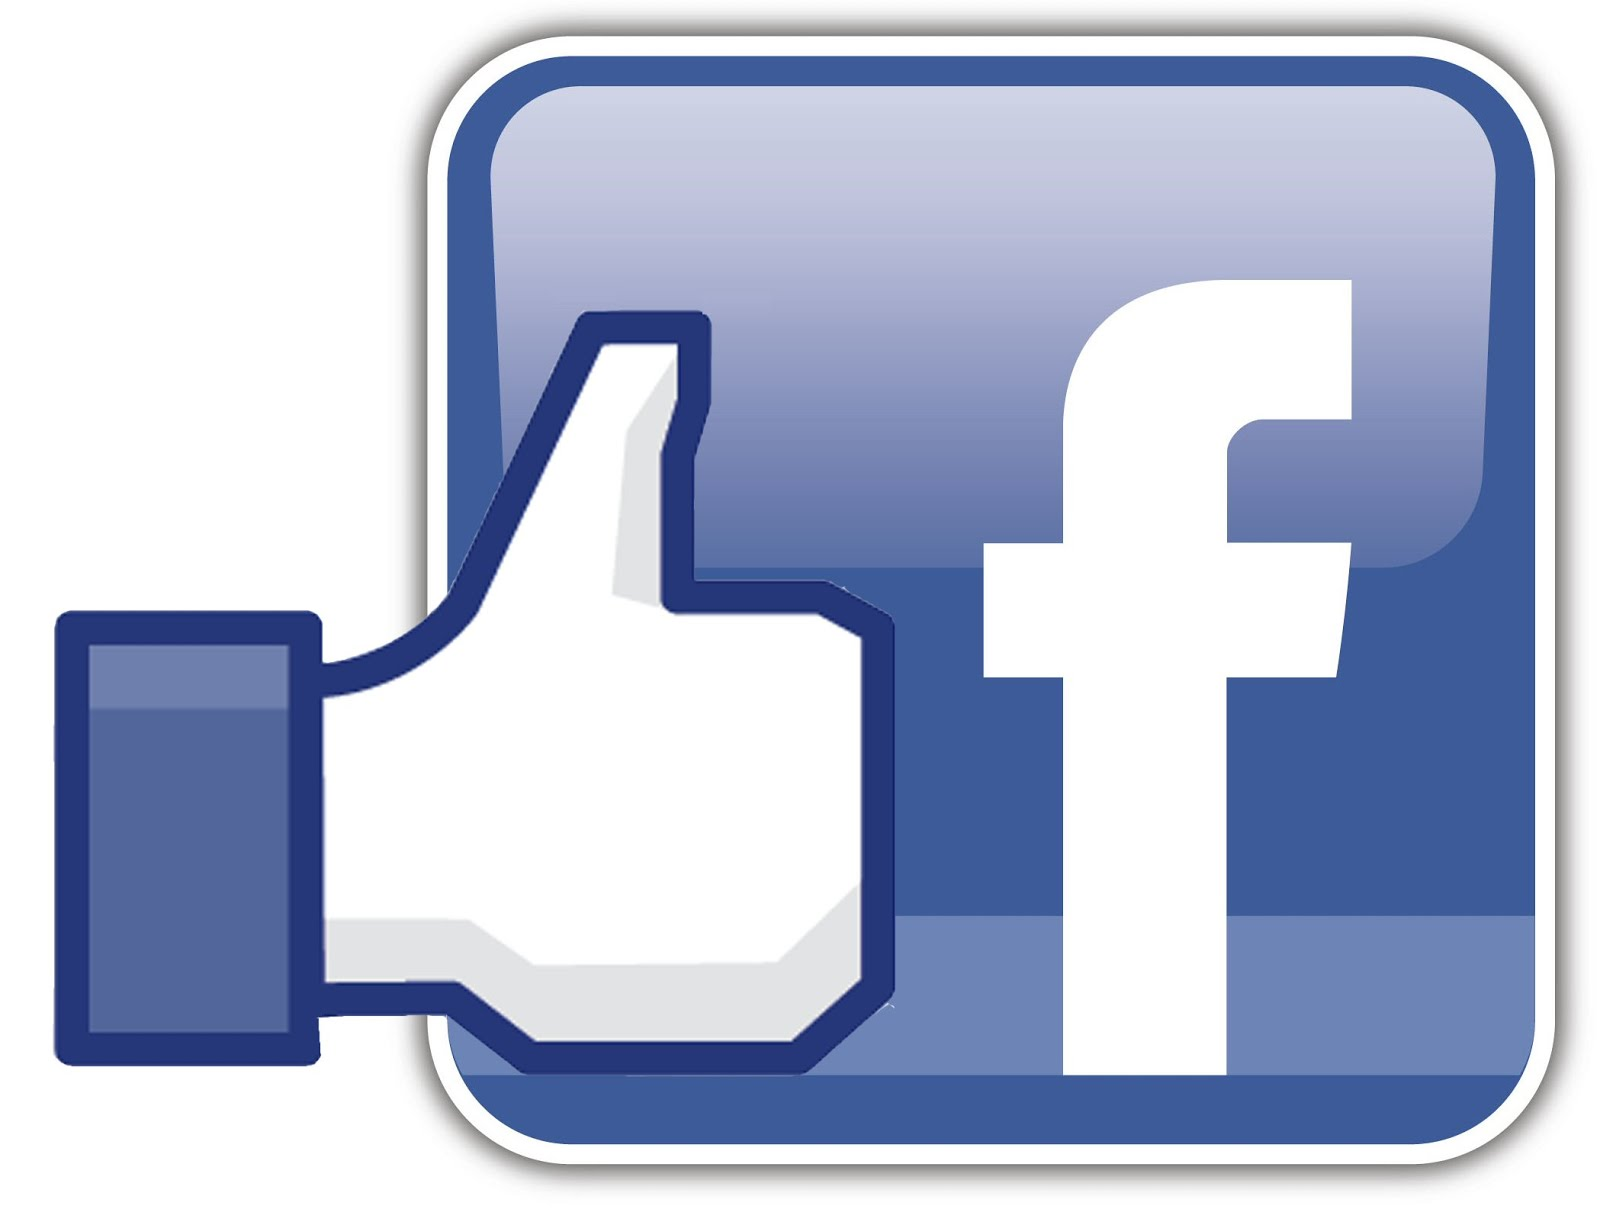 facebook like logo 020186600 0046 16122014